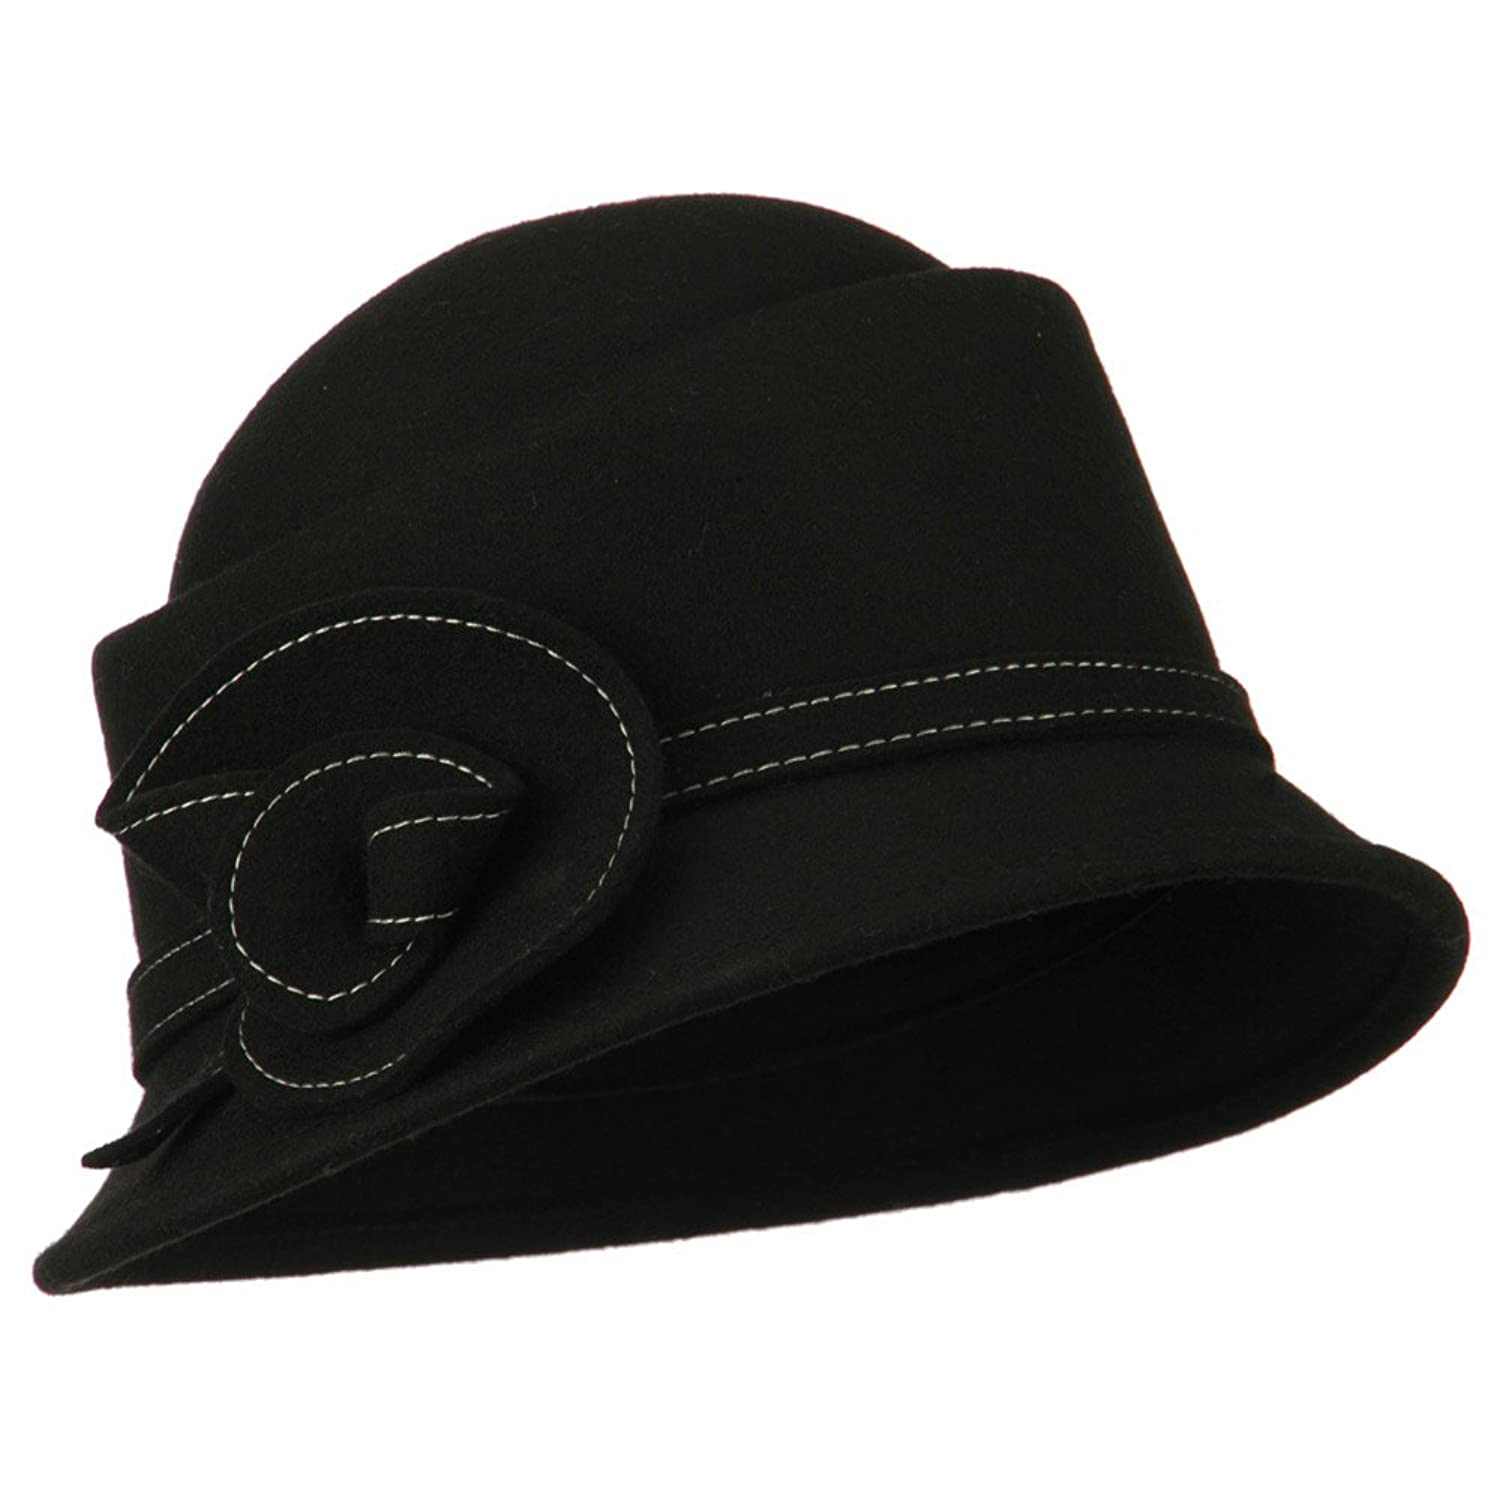 Women's Wool Felt Cloche - Black